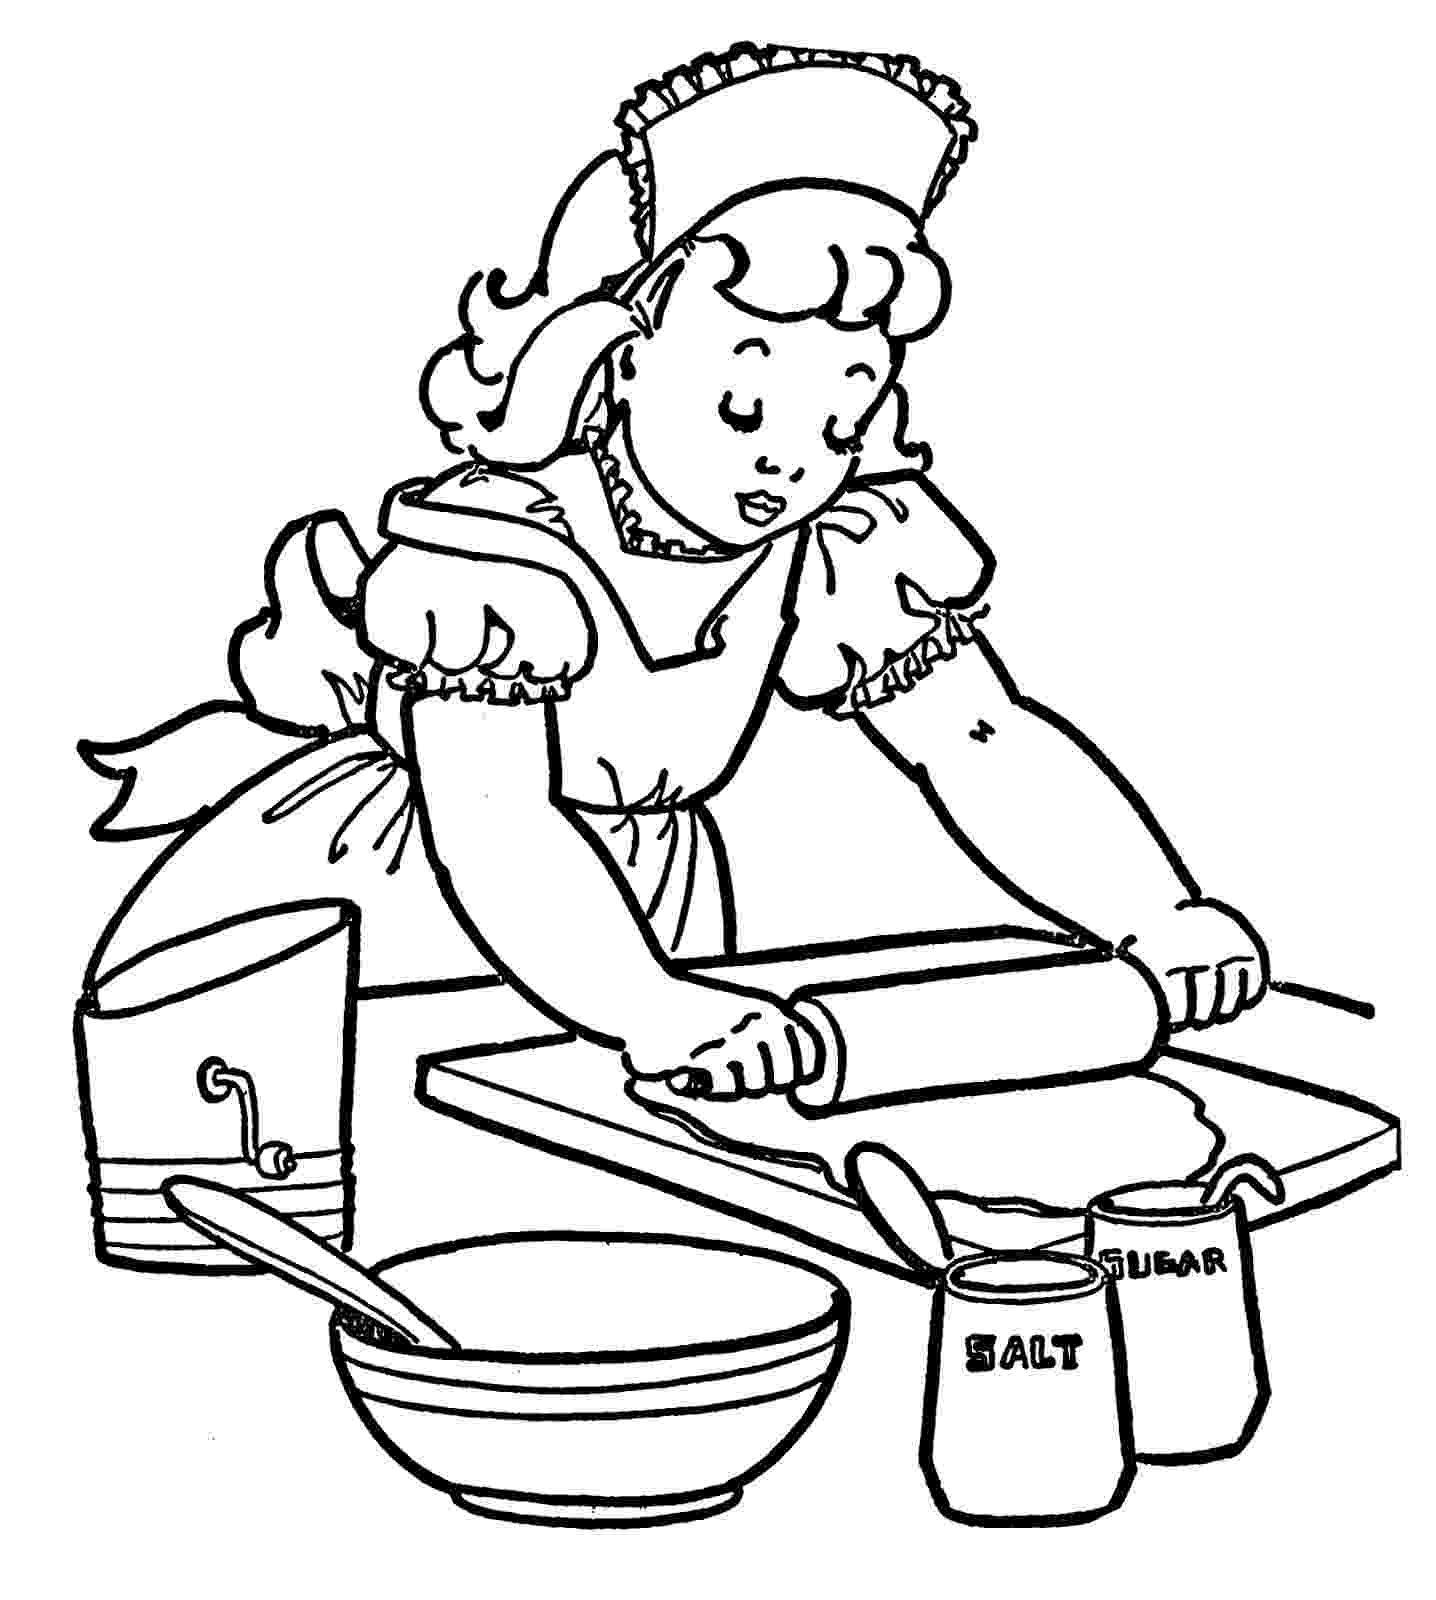 baking coloring pages baking with professor inkling coloring page free baking pages coloring